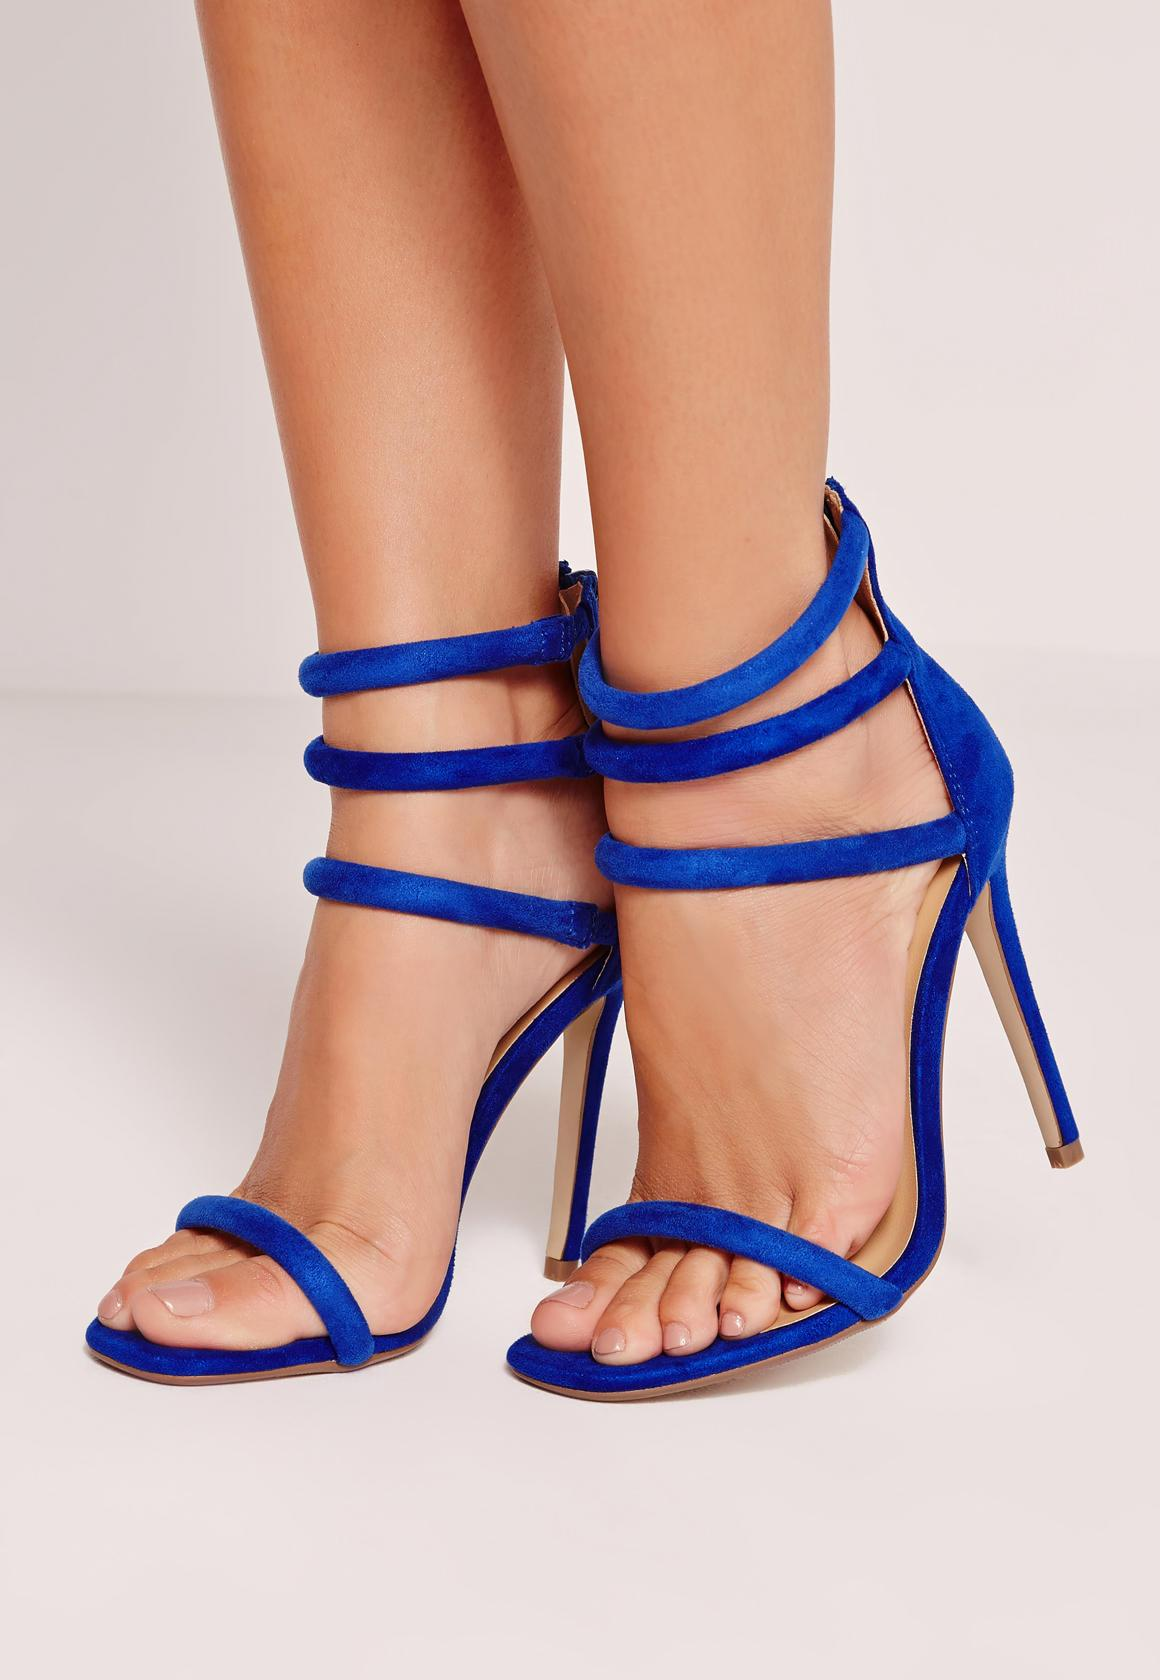 rounded-strap-barely-there-sandals-cobalt-blue.jpg